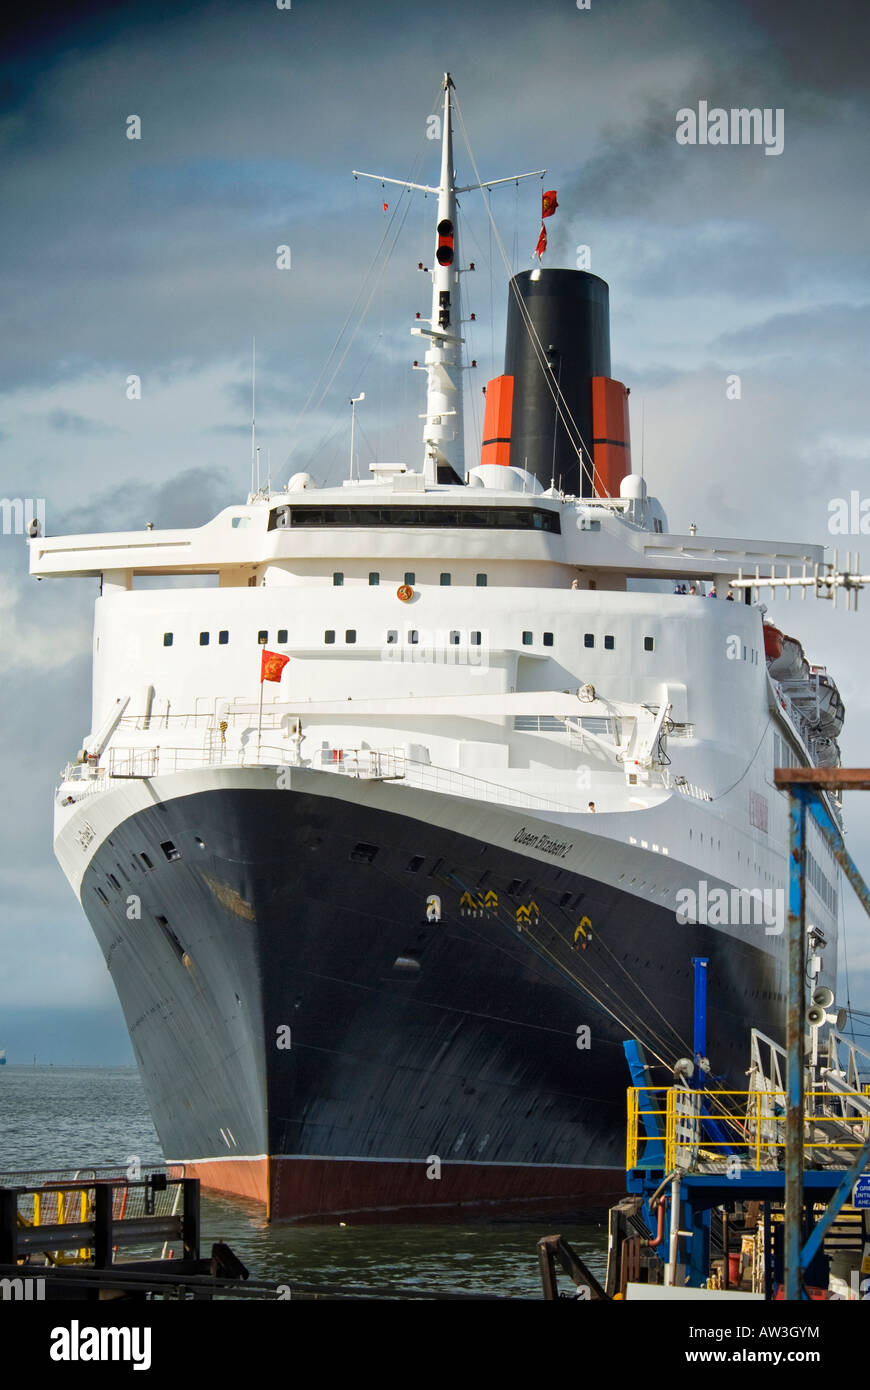 The QE2 berthed at Liverpool. - Stock Image